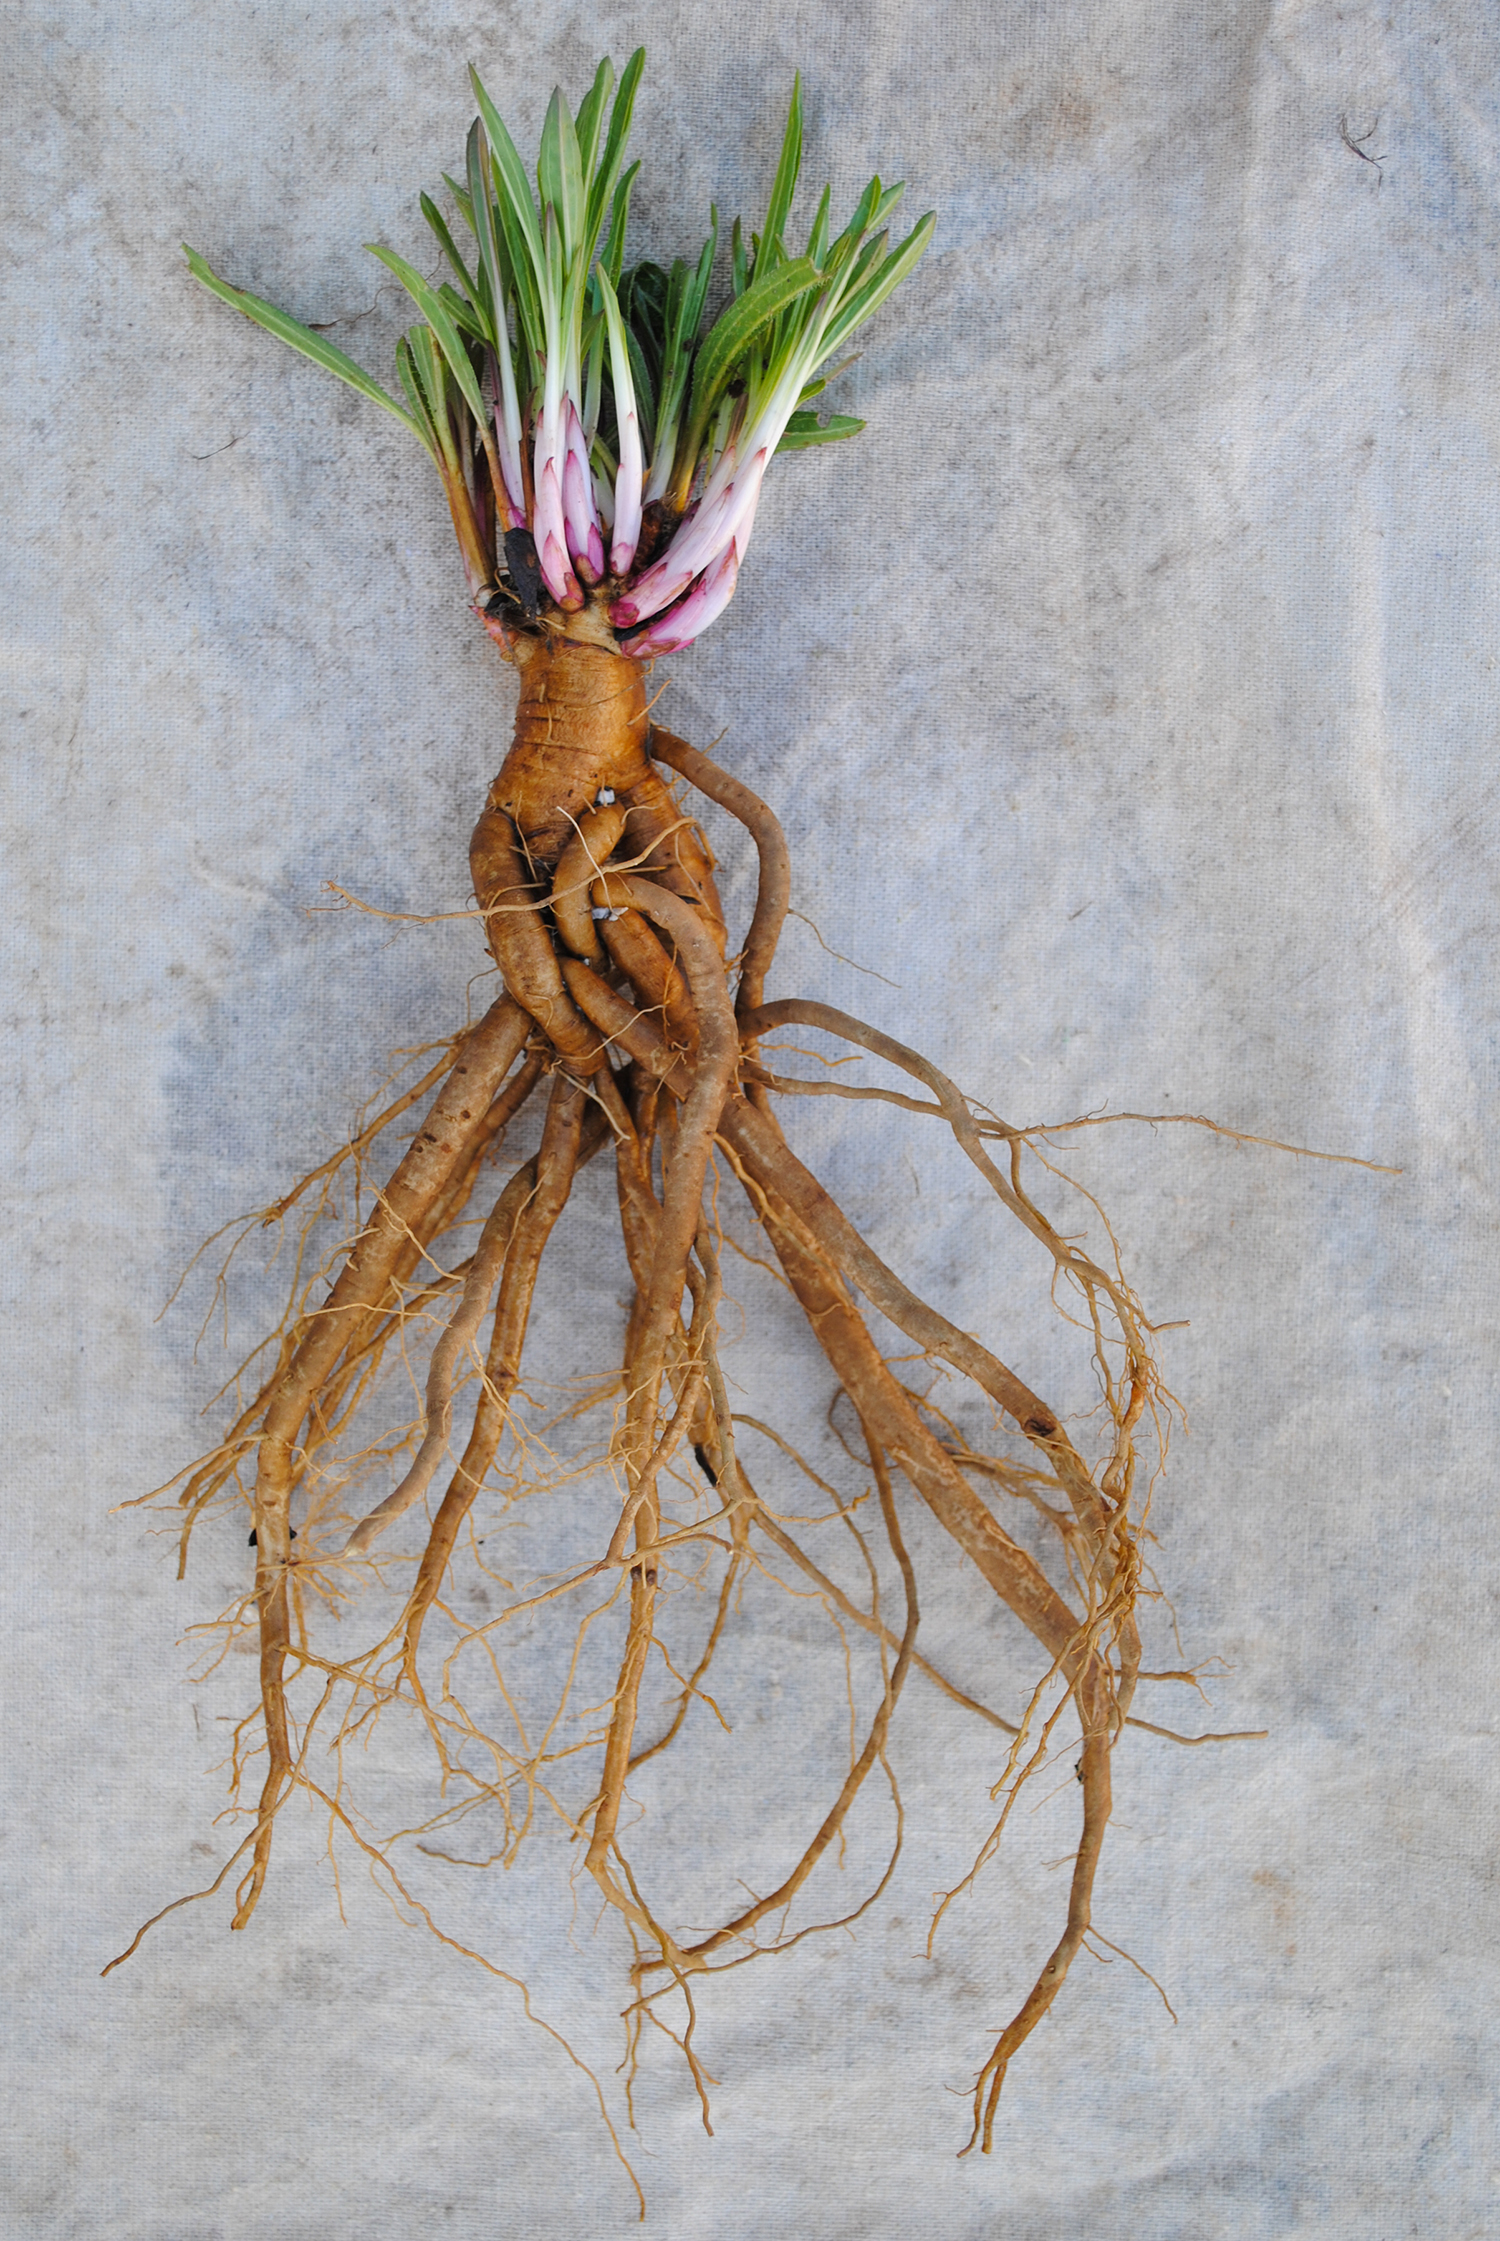 I learn so much each time I expose roots.  Here, plump taproots on  Echinacea tennesseensis  likely help the plant survive stressful times during the year and store resources for the coming bloom.